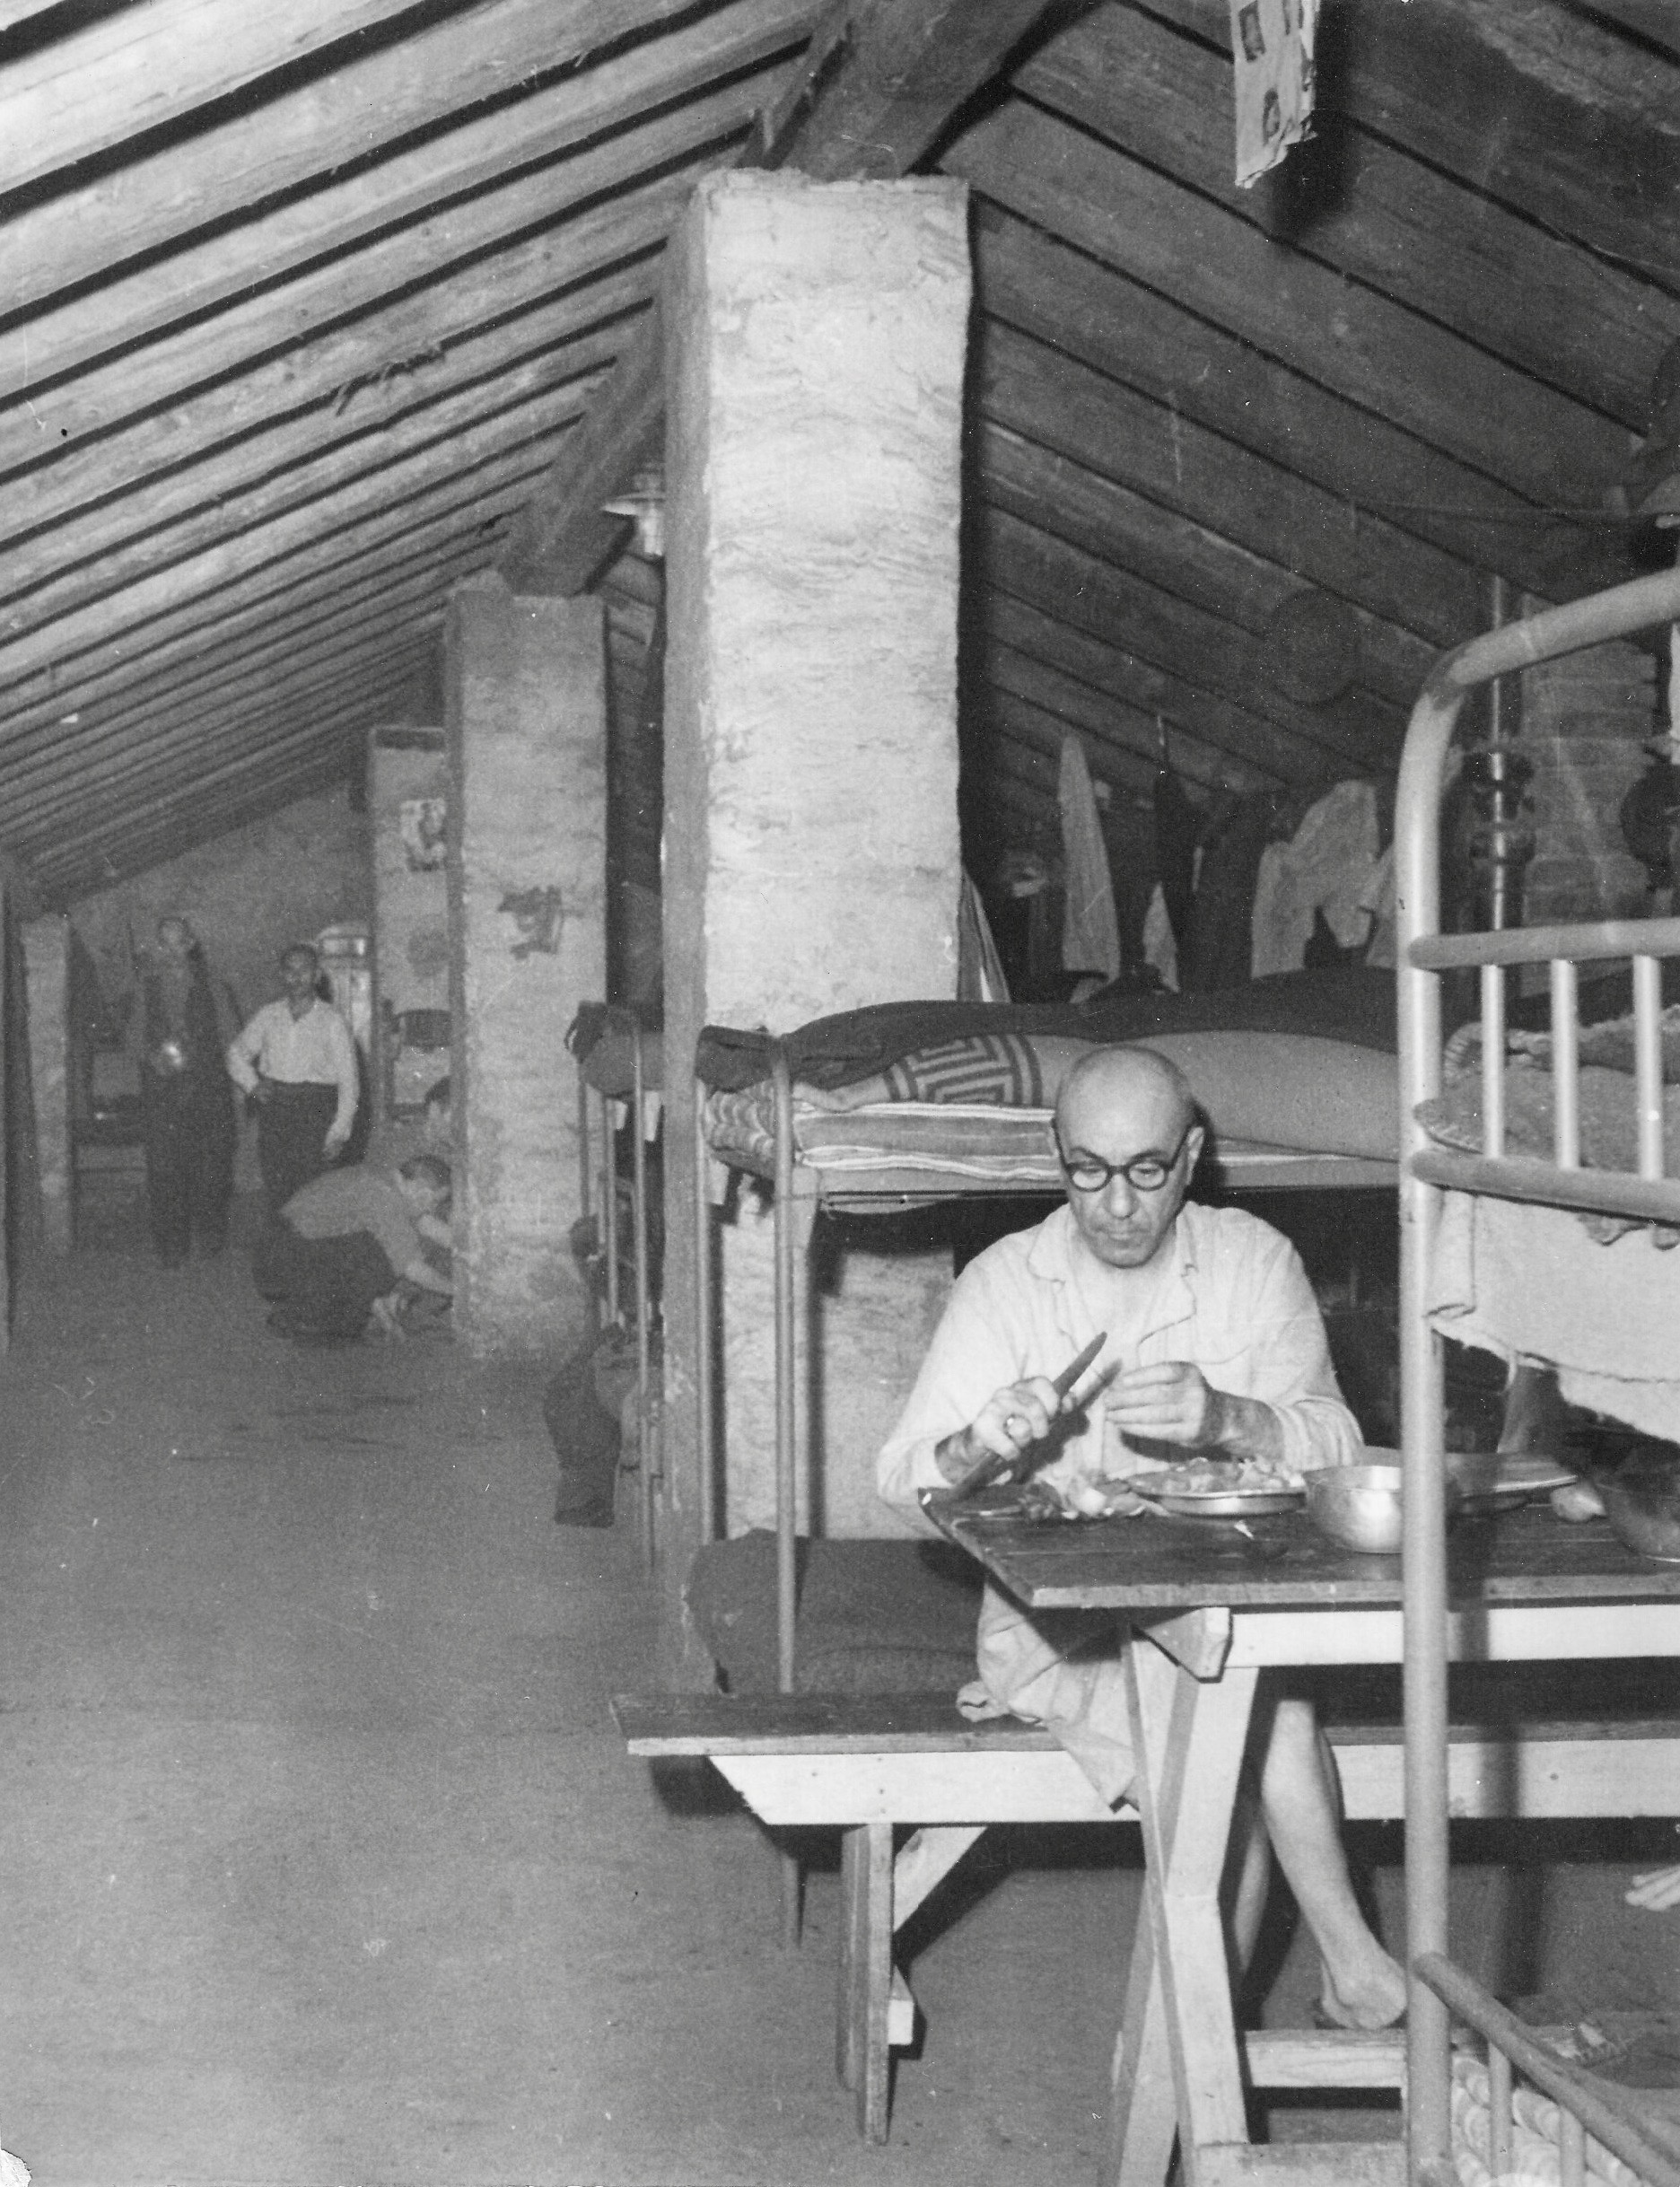 Gesuiti camp, attic, Russian refugee prepares bread and onions meal 1950-51